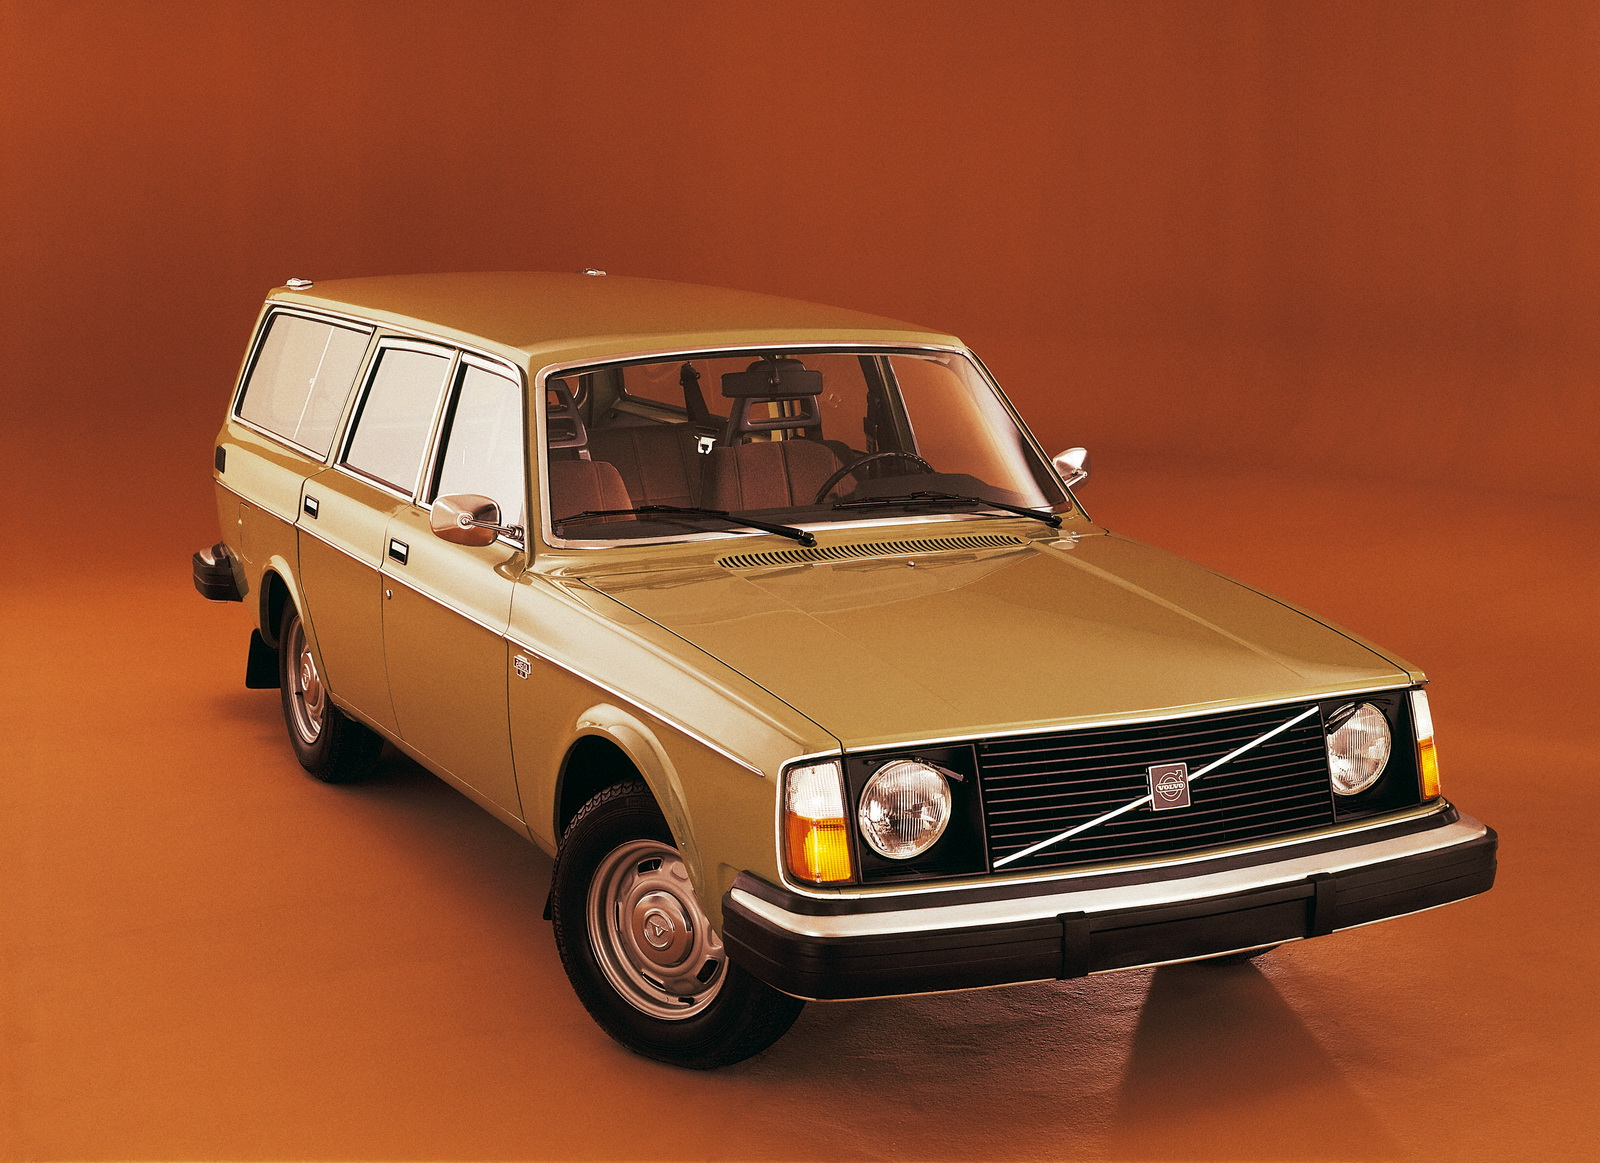 1990 volvo 240 kombi (p245) – pictures, information and specs